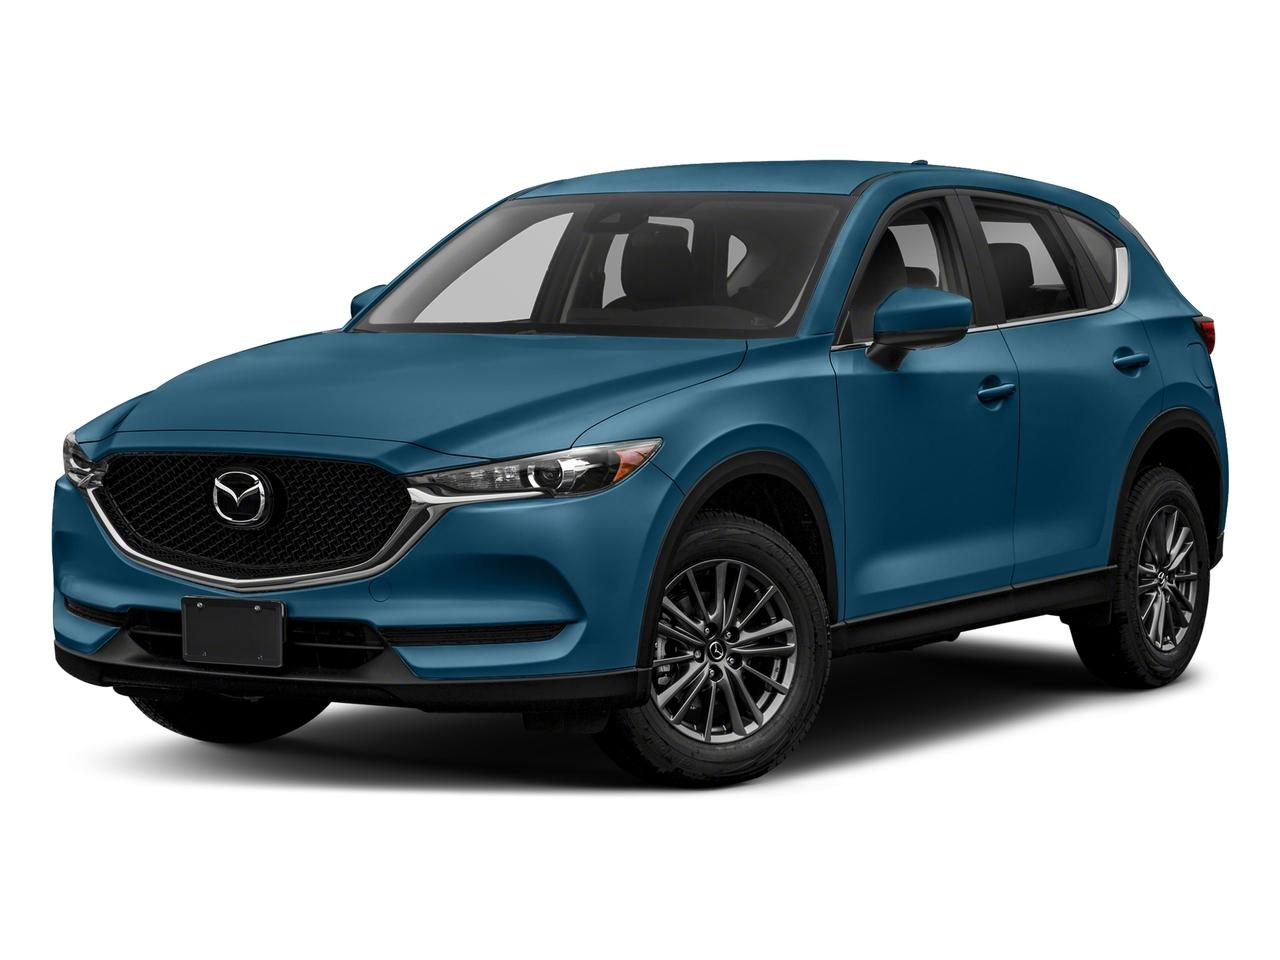 2018 Mazda CX-5 Vehicle Photo in San Antonio, TX 78238